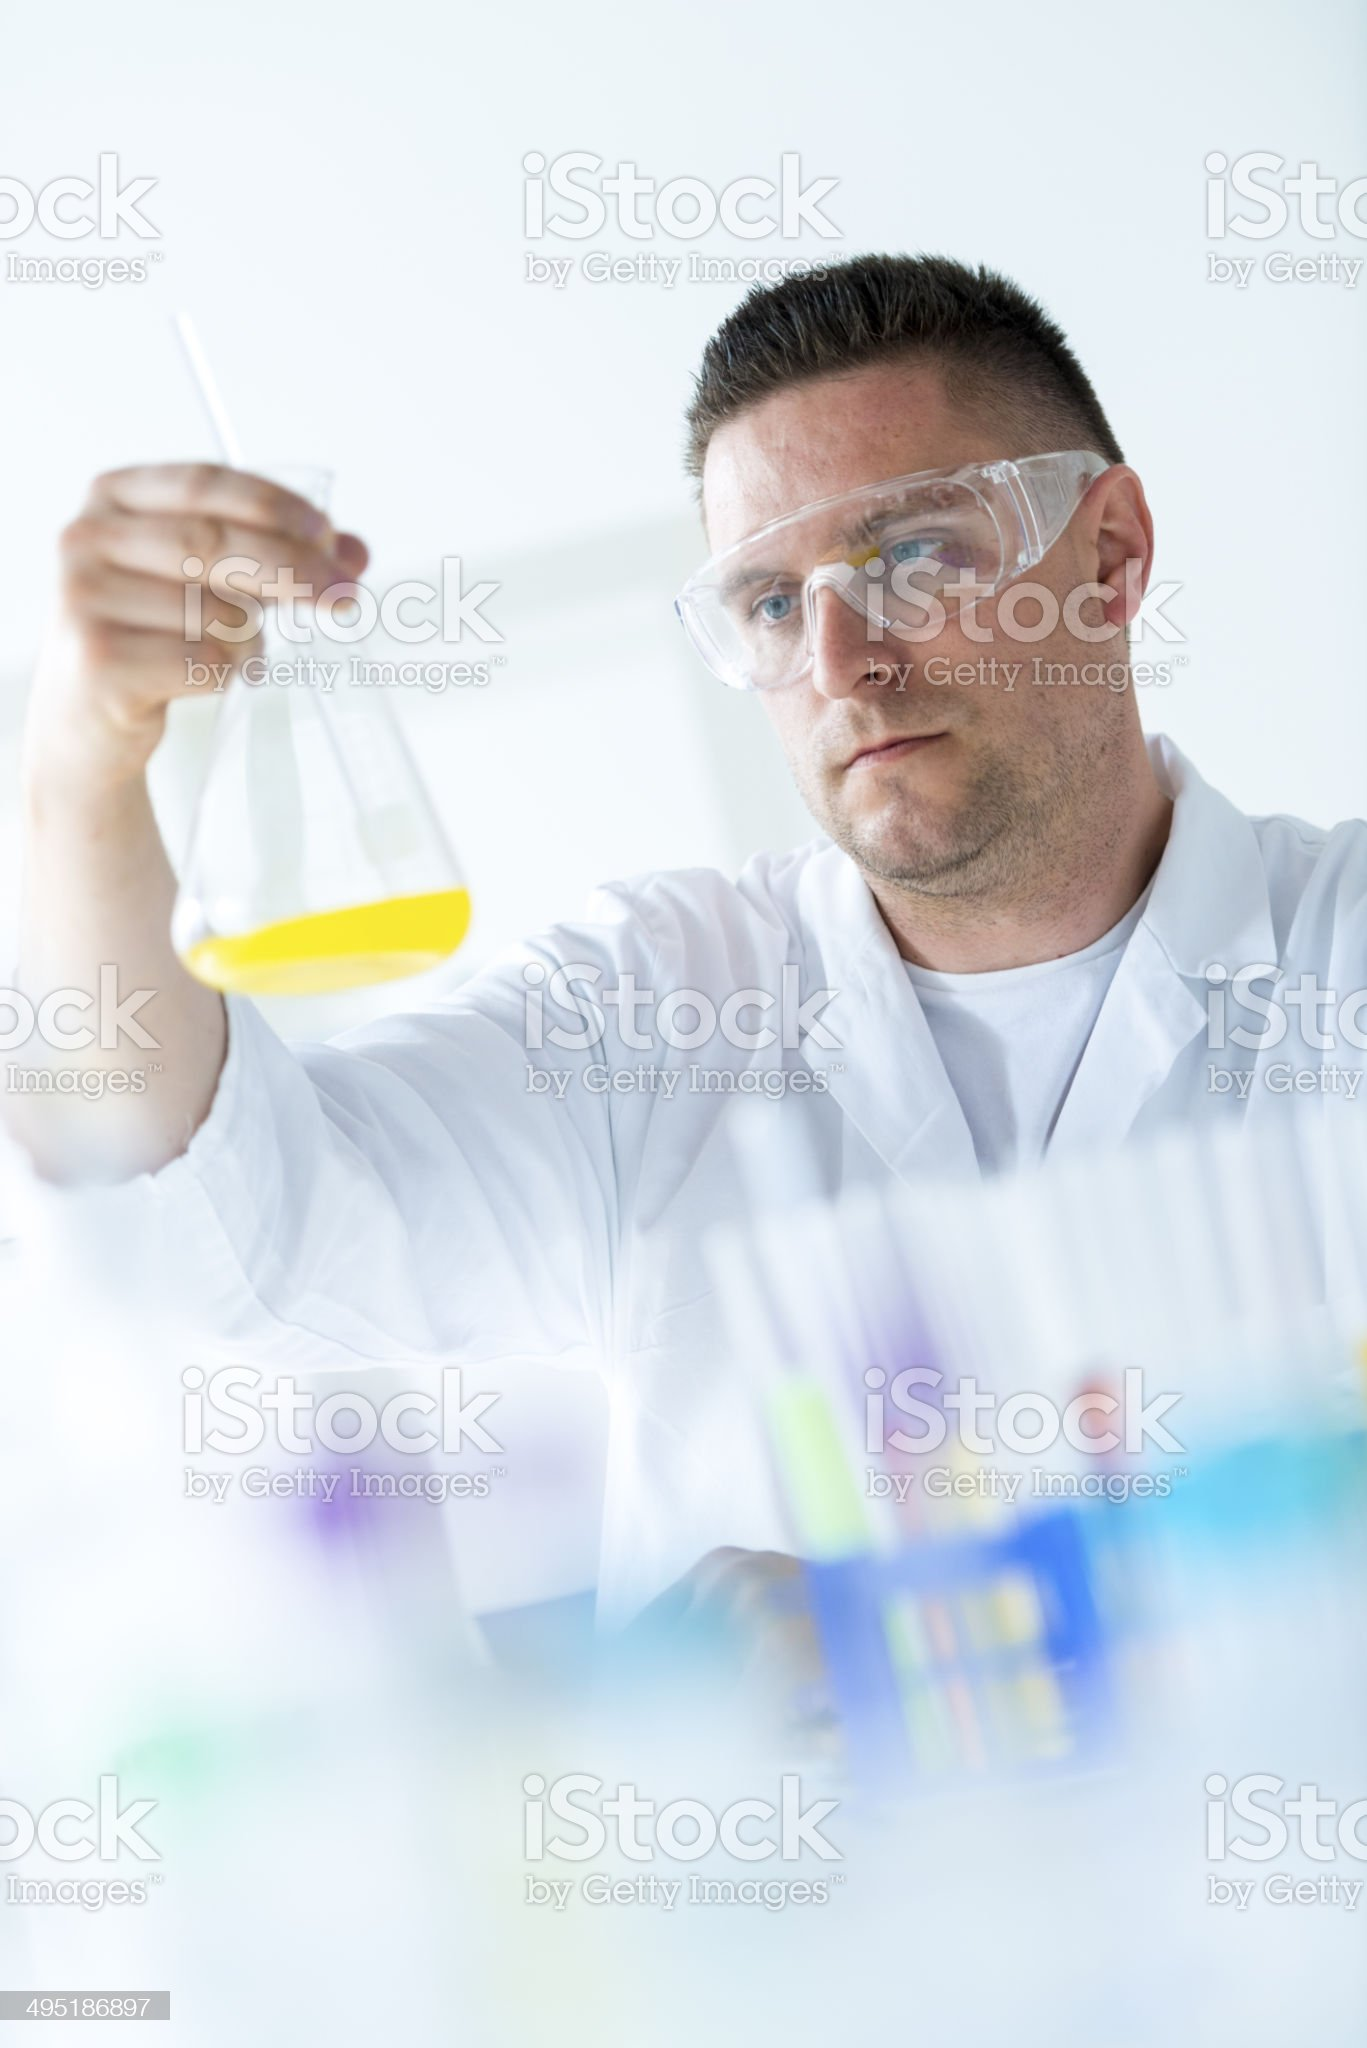 Mixing chemicals royalty-free stock photo